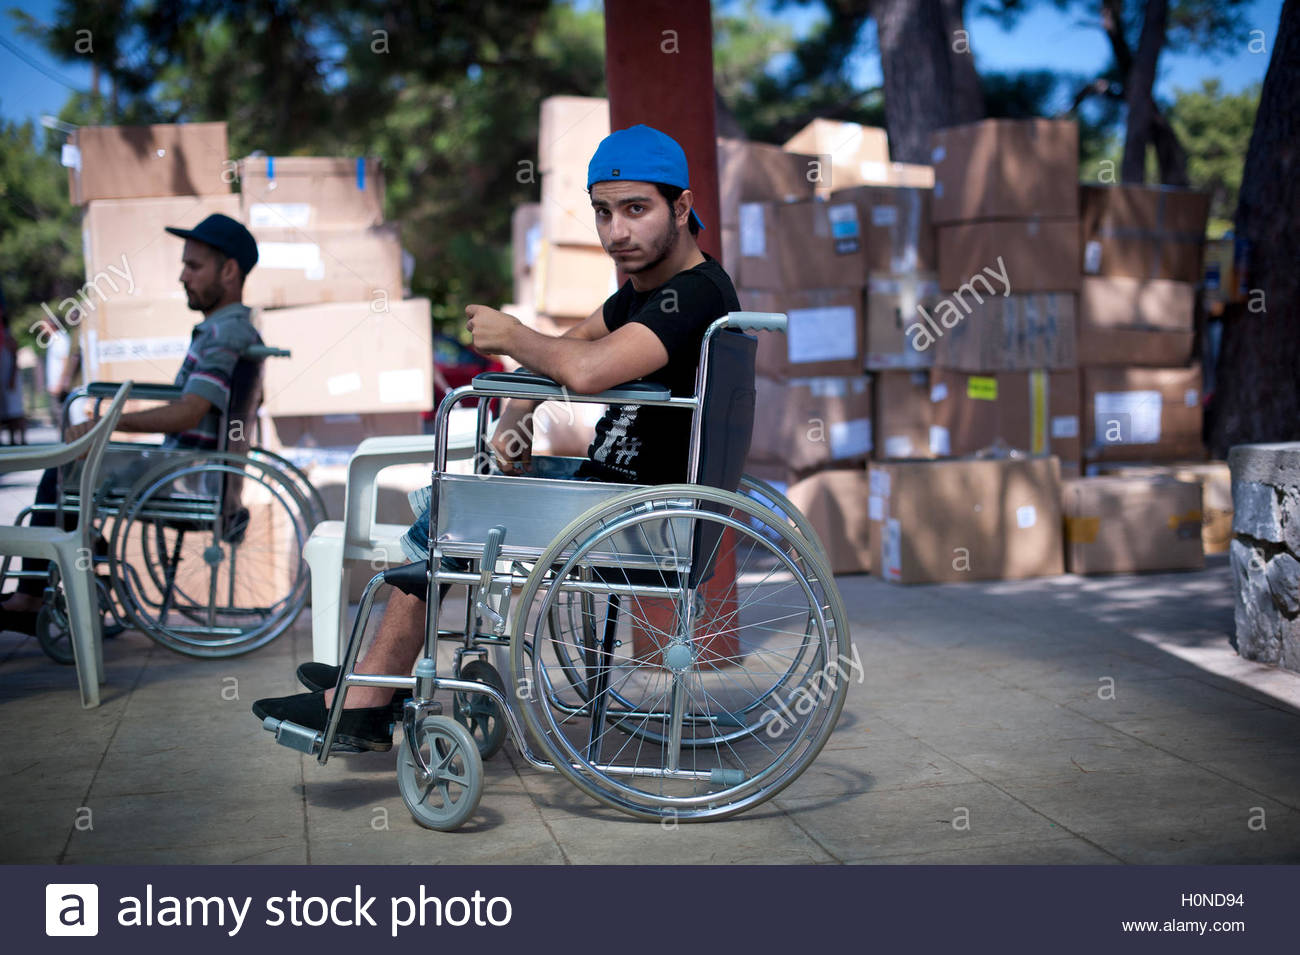 A disabled refugee at PIKPA refugee center, Lesbos, Greece. - Stock Image